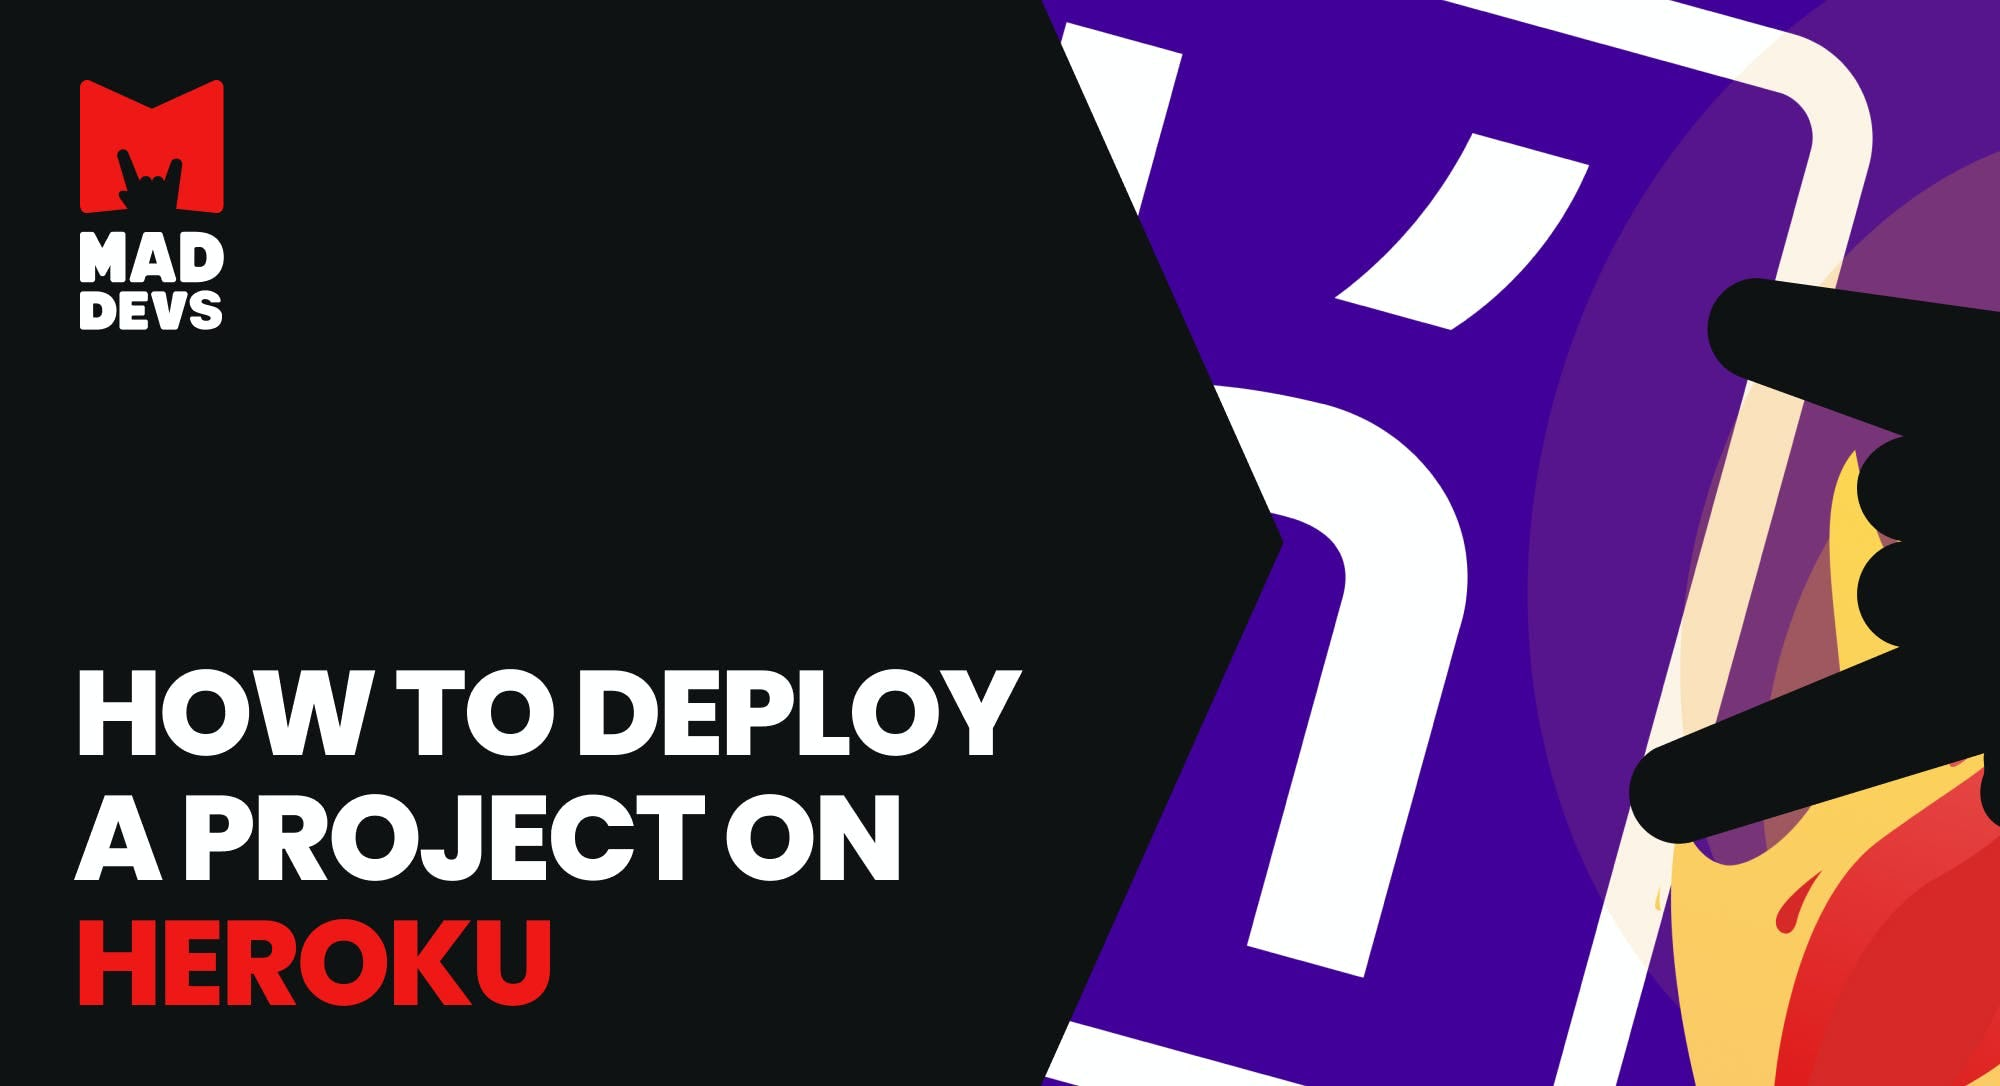 How to Deploy a Project onHeroku.